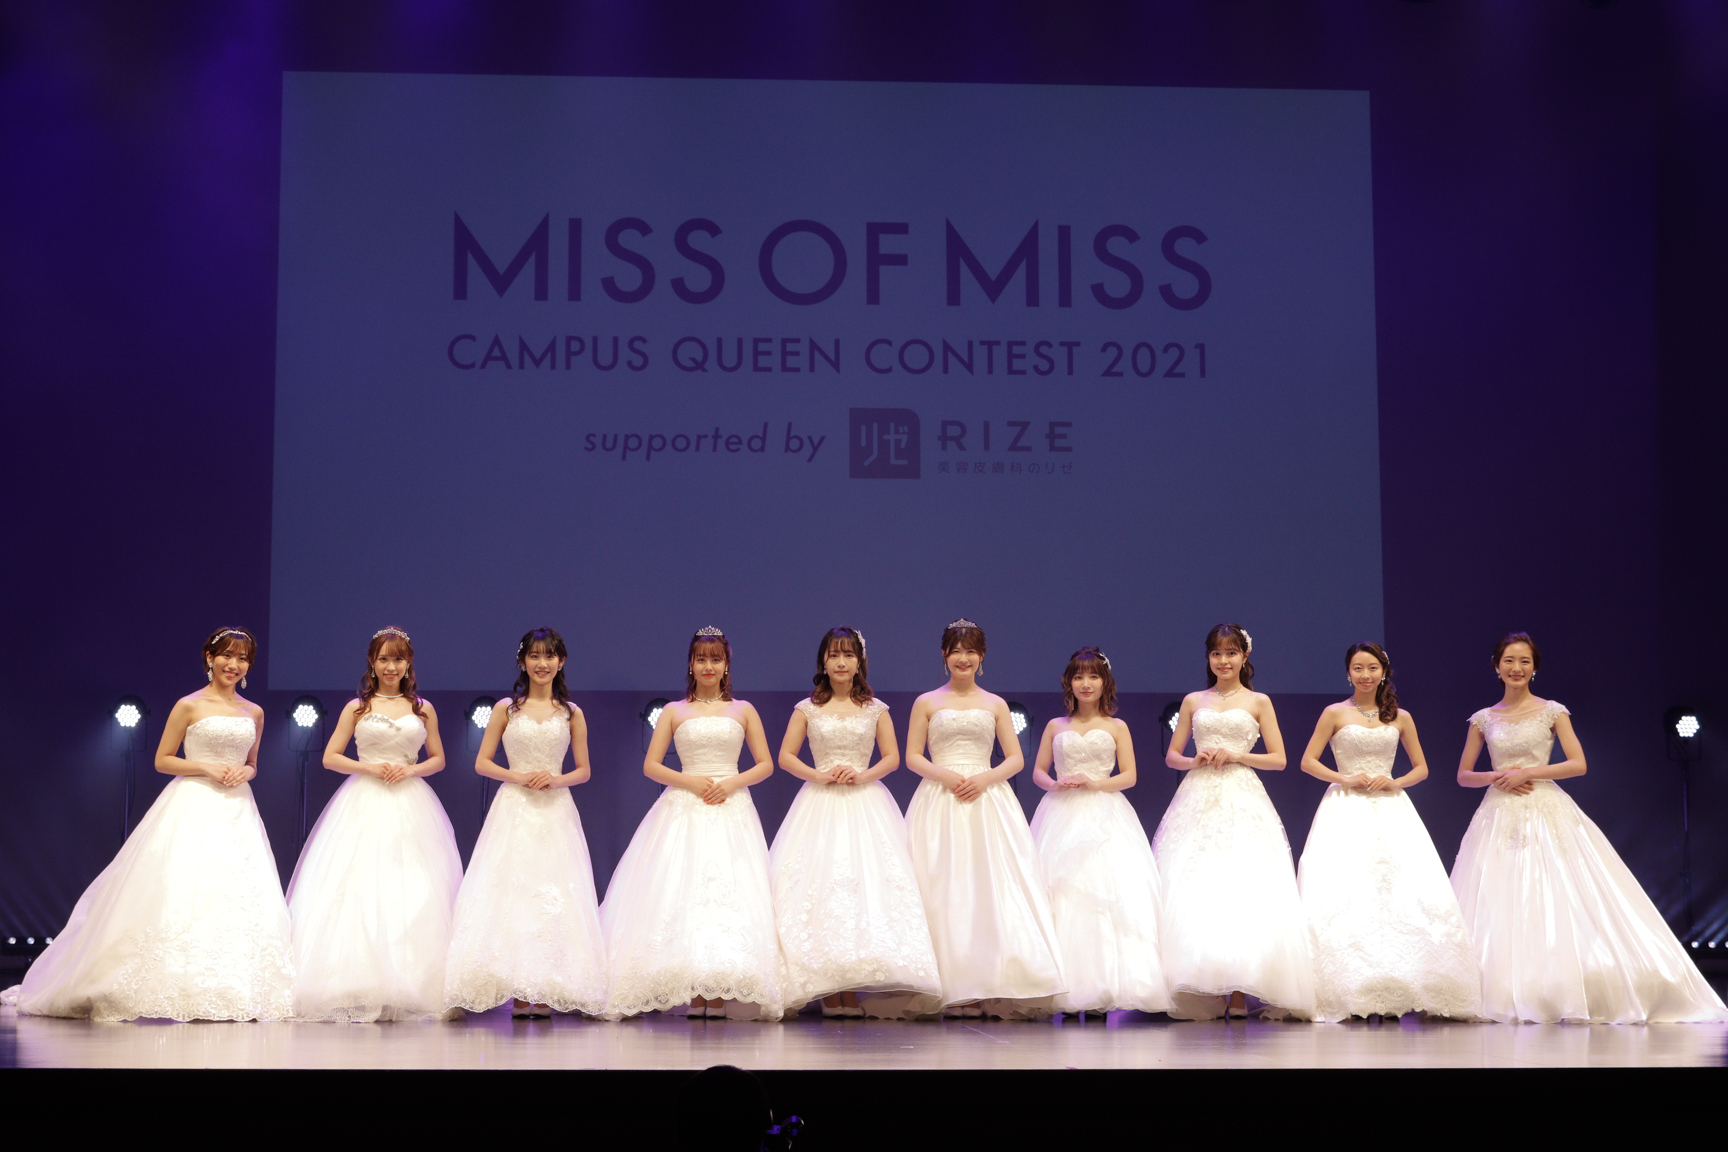 MISS OF MISS CAMPUS QUEEN CONTEST 2021